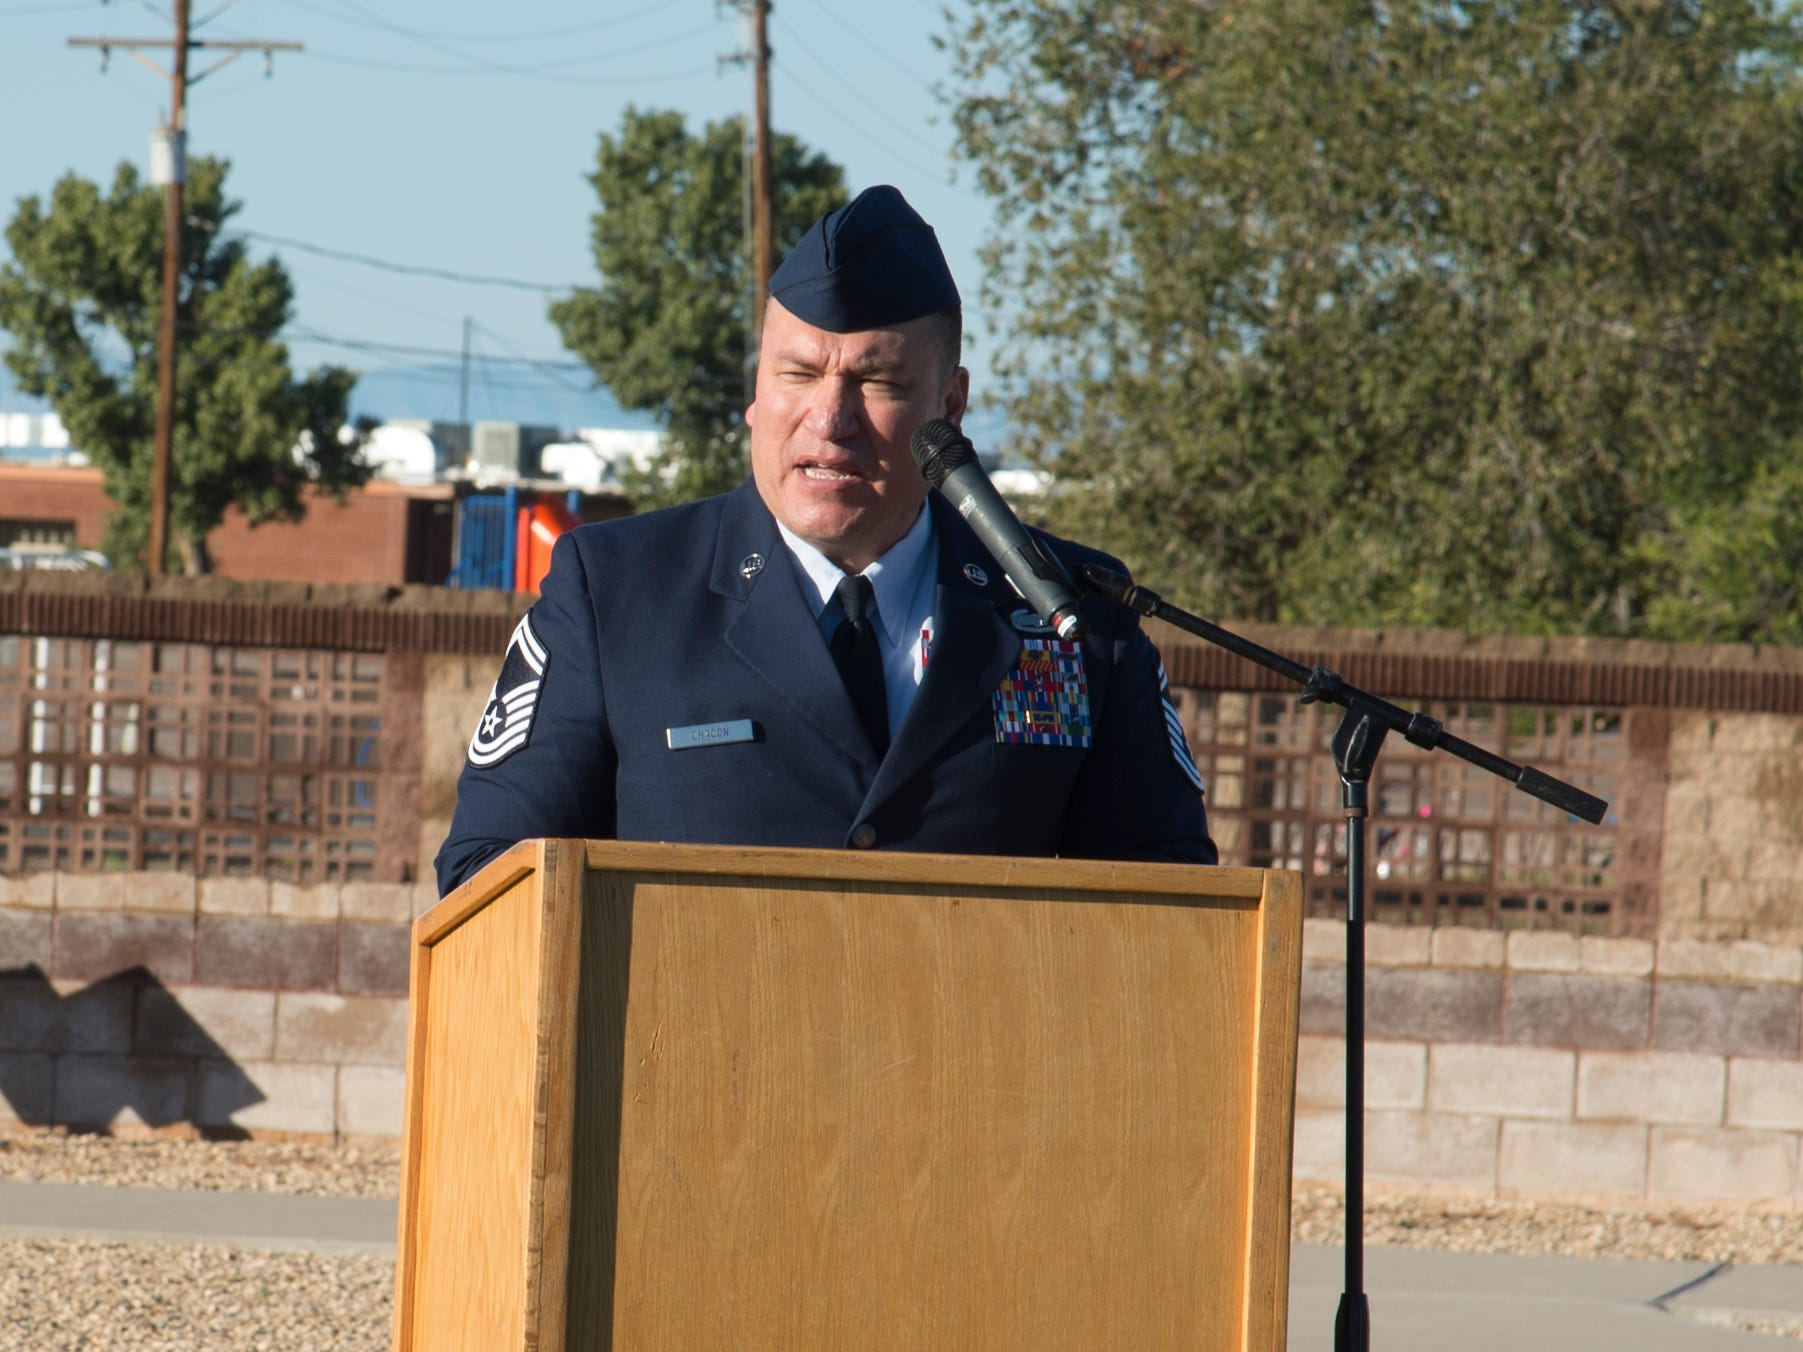 Senior Master Sgt. John Chacon, 49th Civil Engineer Squadron operations superintendent, speaks at the POW/MIA ceremony at Heritage Park on Holloman Air Force Base, N.M., Sept. 21. The ceremony, in rememberance of prisoners-of-war and those still missing-in-action, was part of Holloman's POW/MIA commemoration.